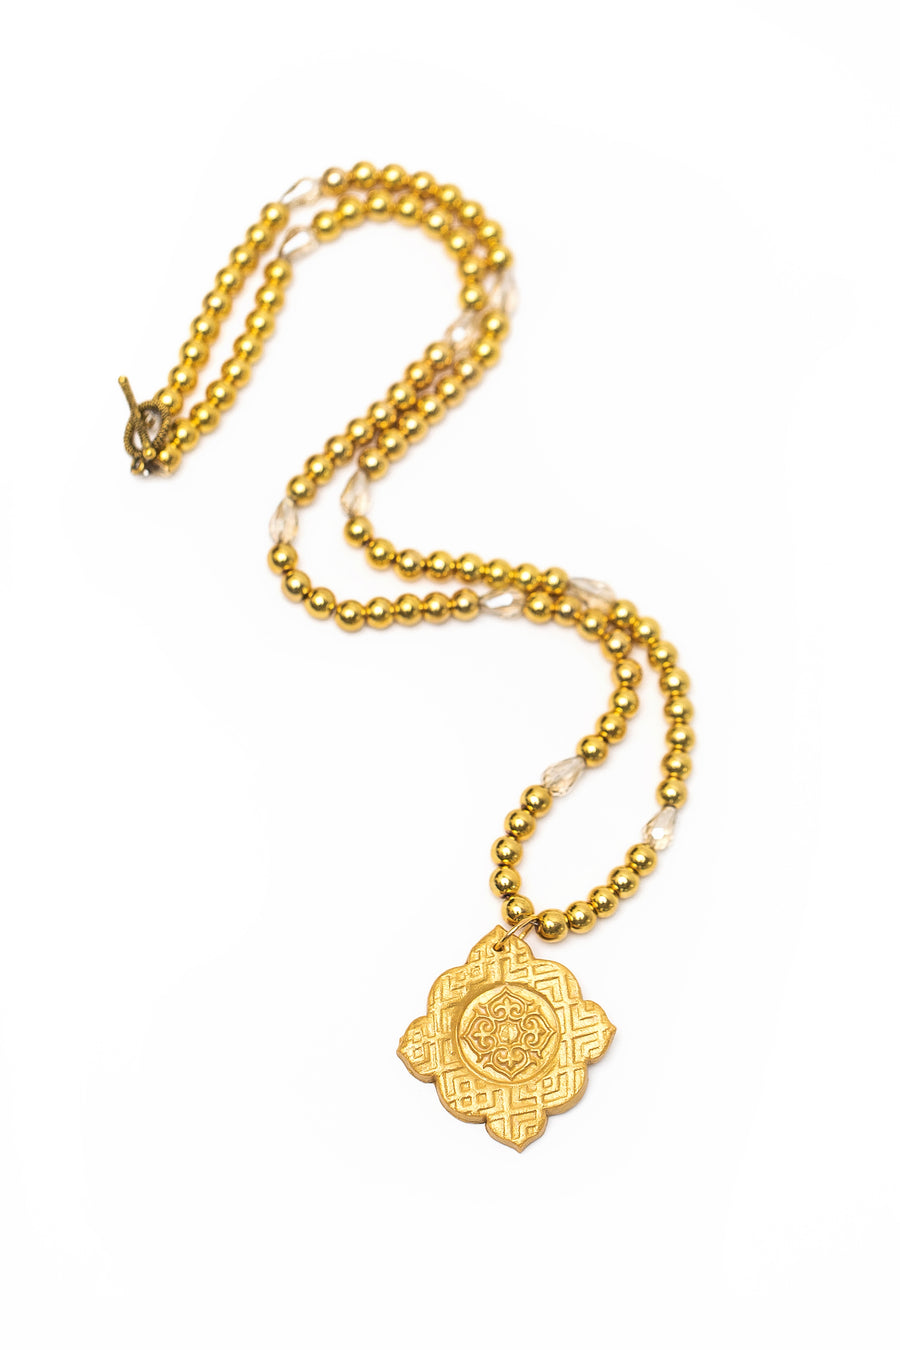 Gold & Crystal with Kelly Medallion Necklace